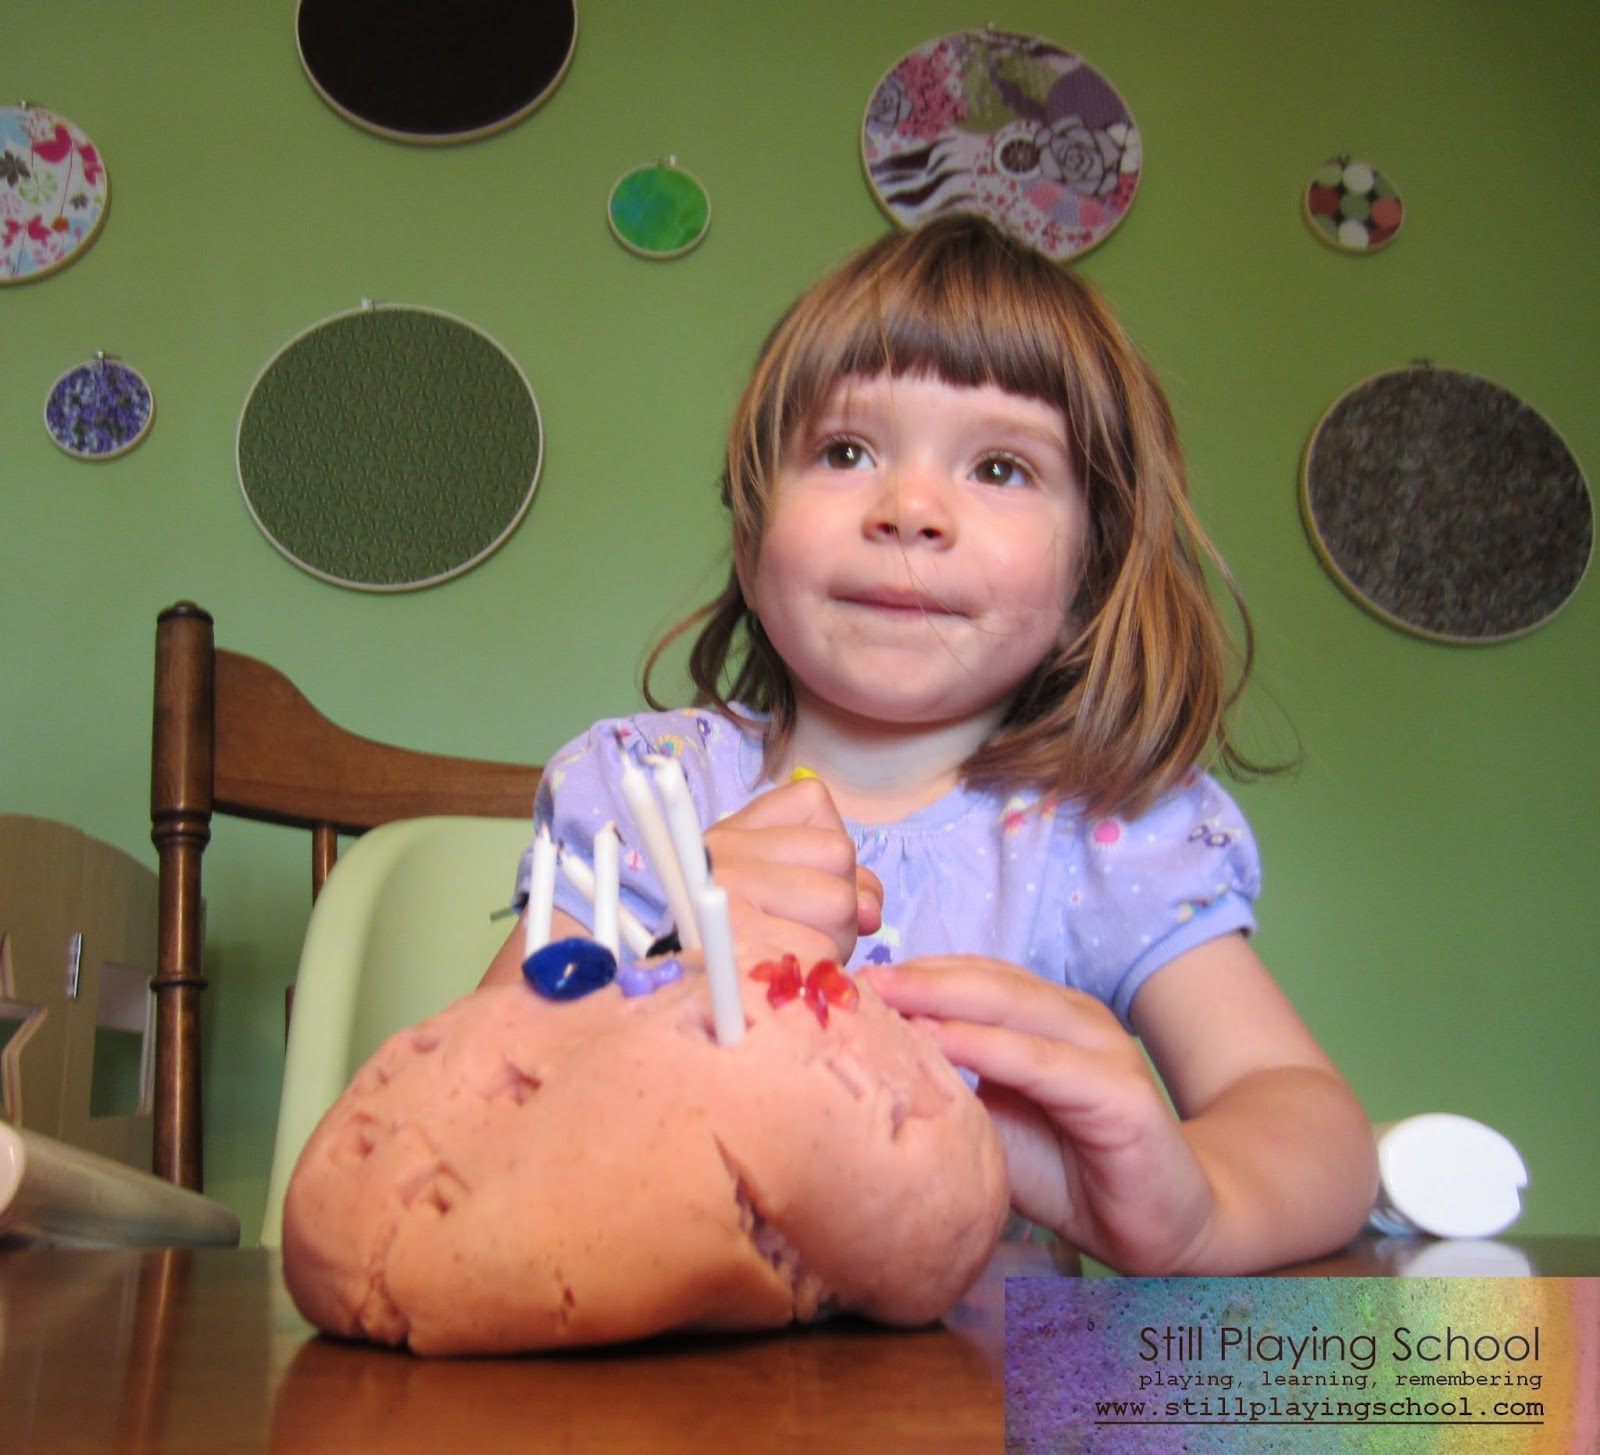 You Just Need Play Dough Ours Is Homemade Candles And Trinkets Beads For Sprinkles Decorations Poking The In Cake Great